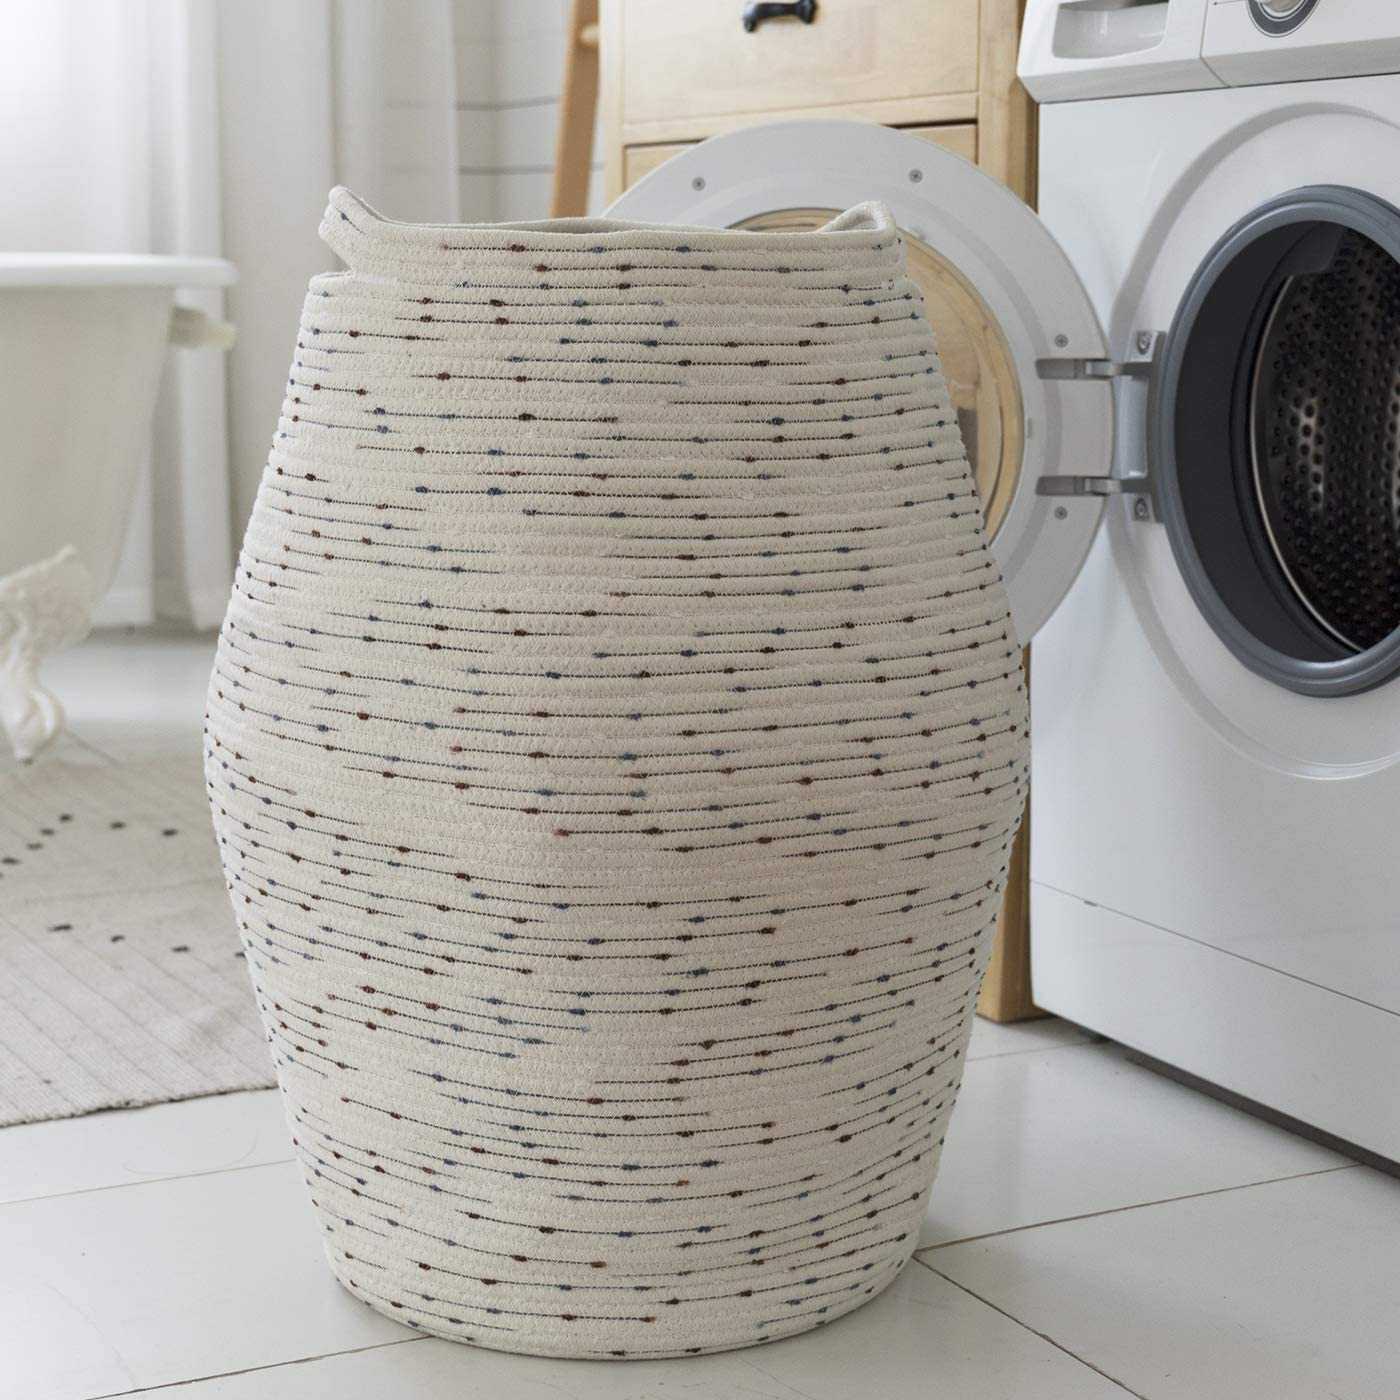 Jumbo Laundry Hamper for Living Room Bathroom Bedroom 24 Inch LA JOLIE MUSE Large Cotton Rope Storage Basket Organizer White Flaxen Patterned Tall Woven Basket